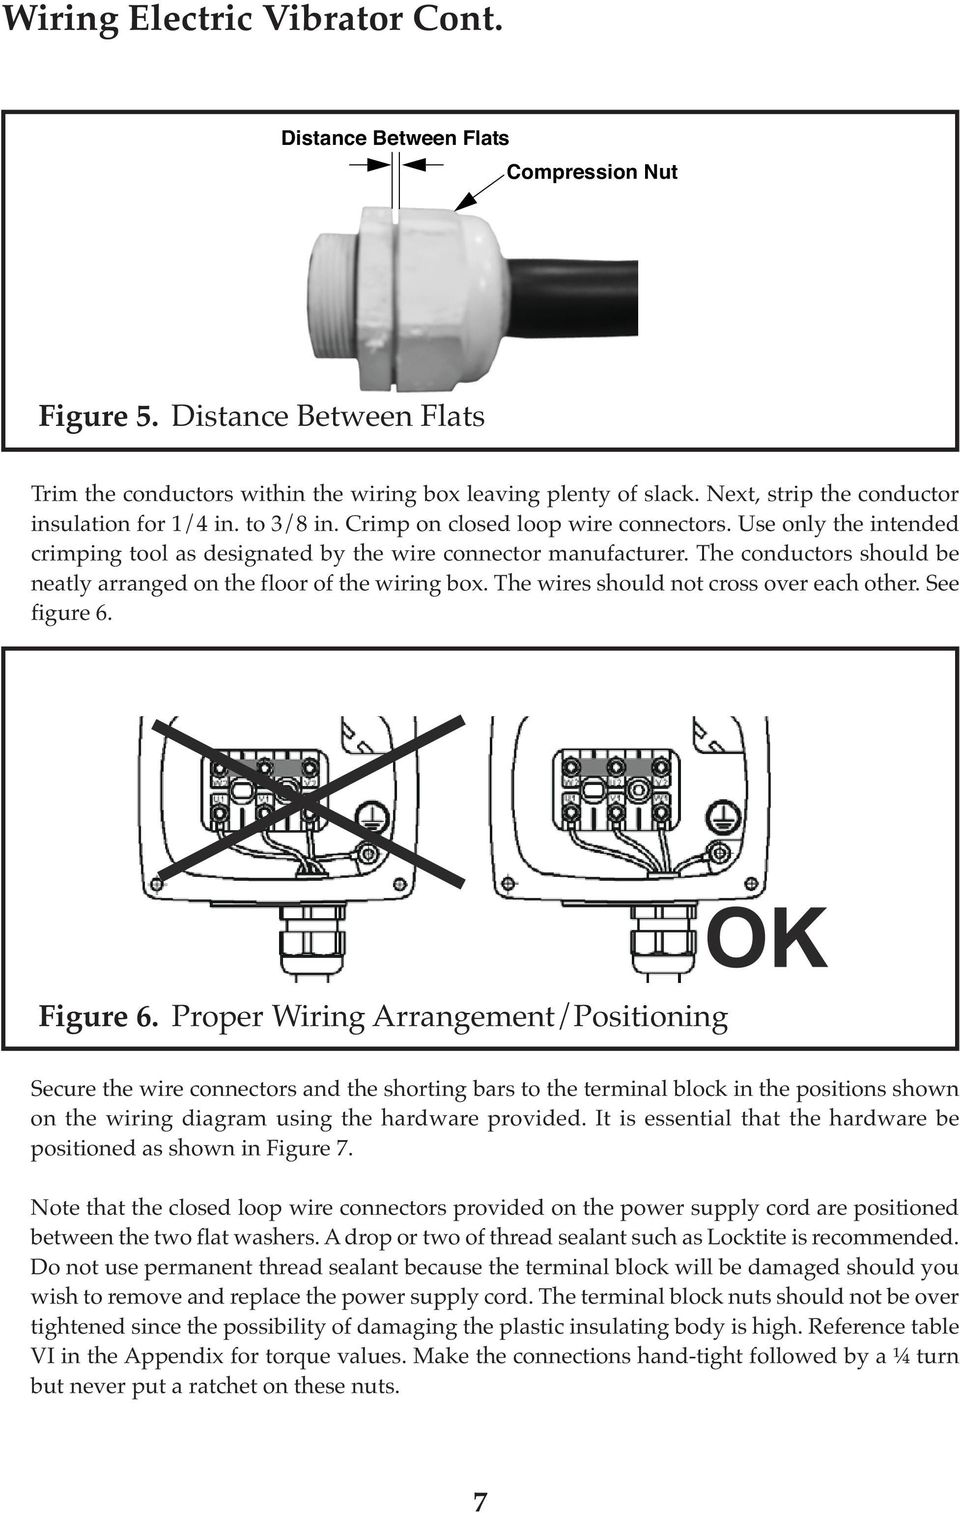 Italvibras Usa Operator S Manual Pdf Wiring Diagrams Terminal Blocks The Conductors Should Be Neatly Arranged On Floor Of Box Wires